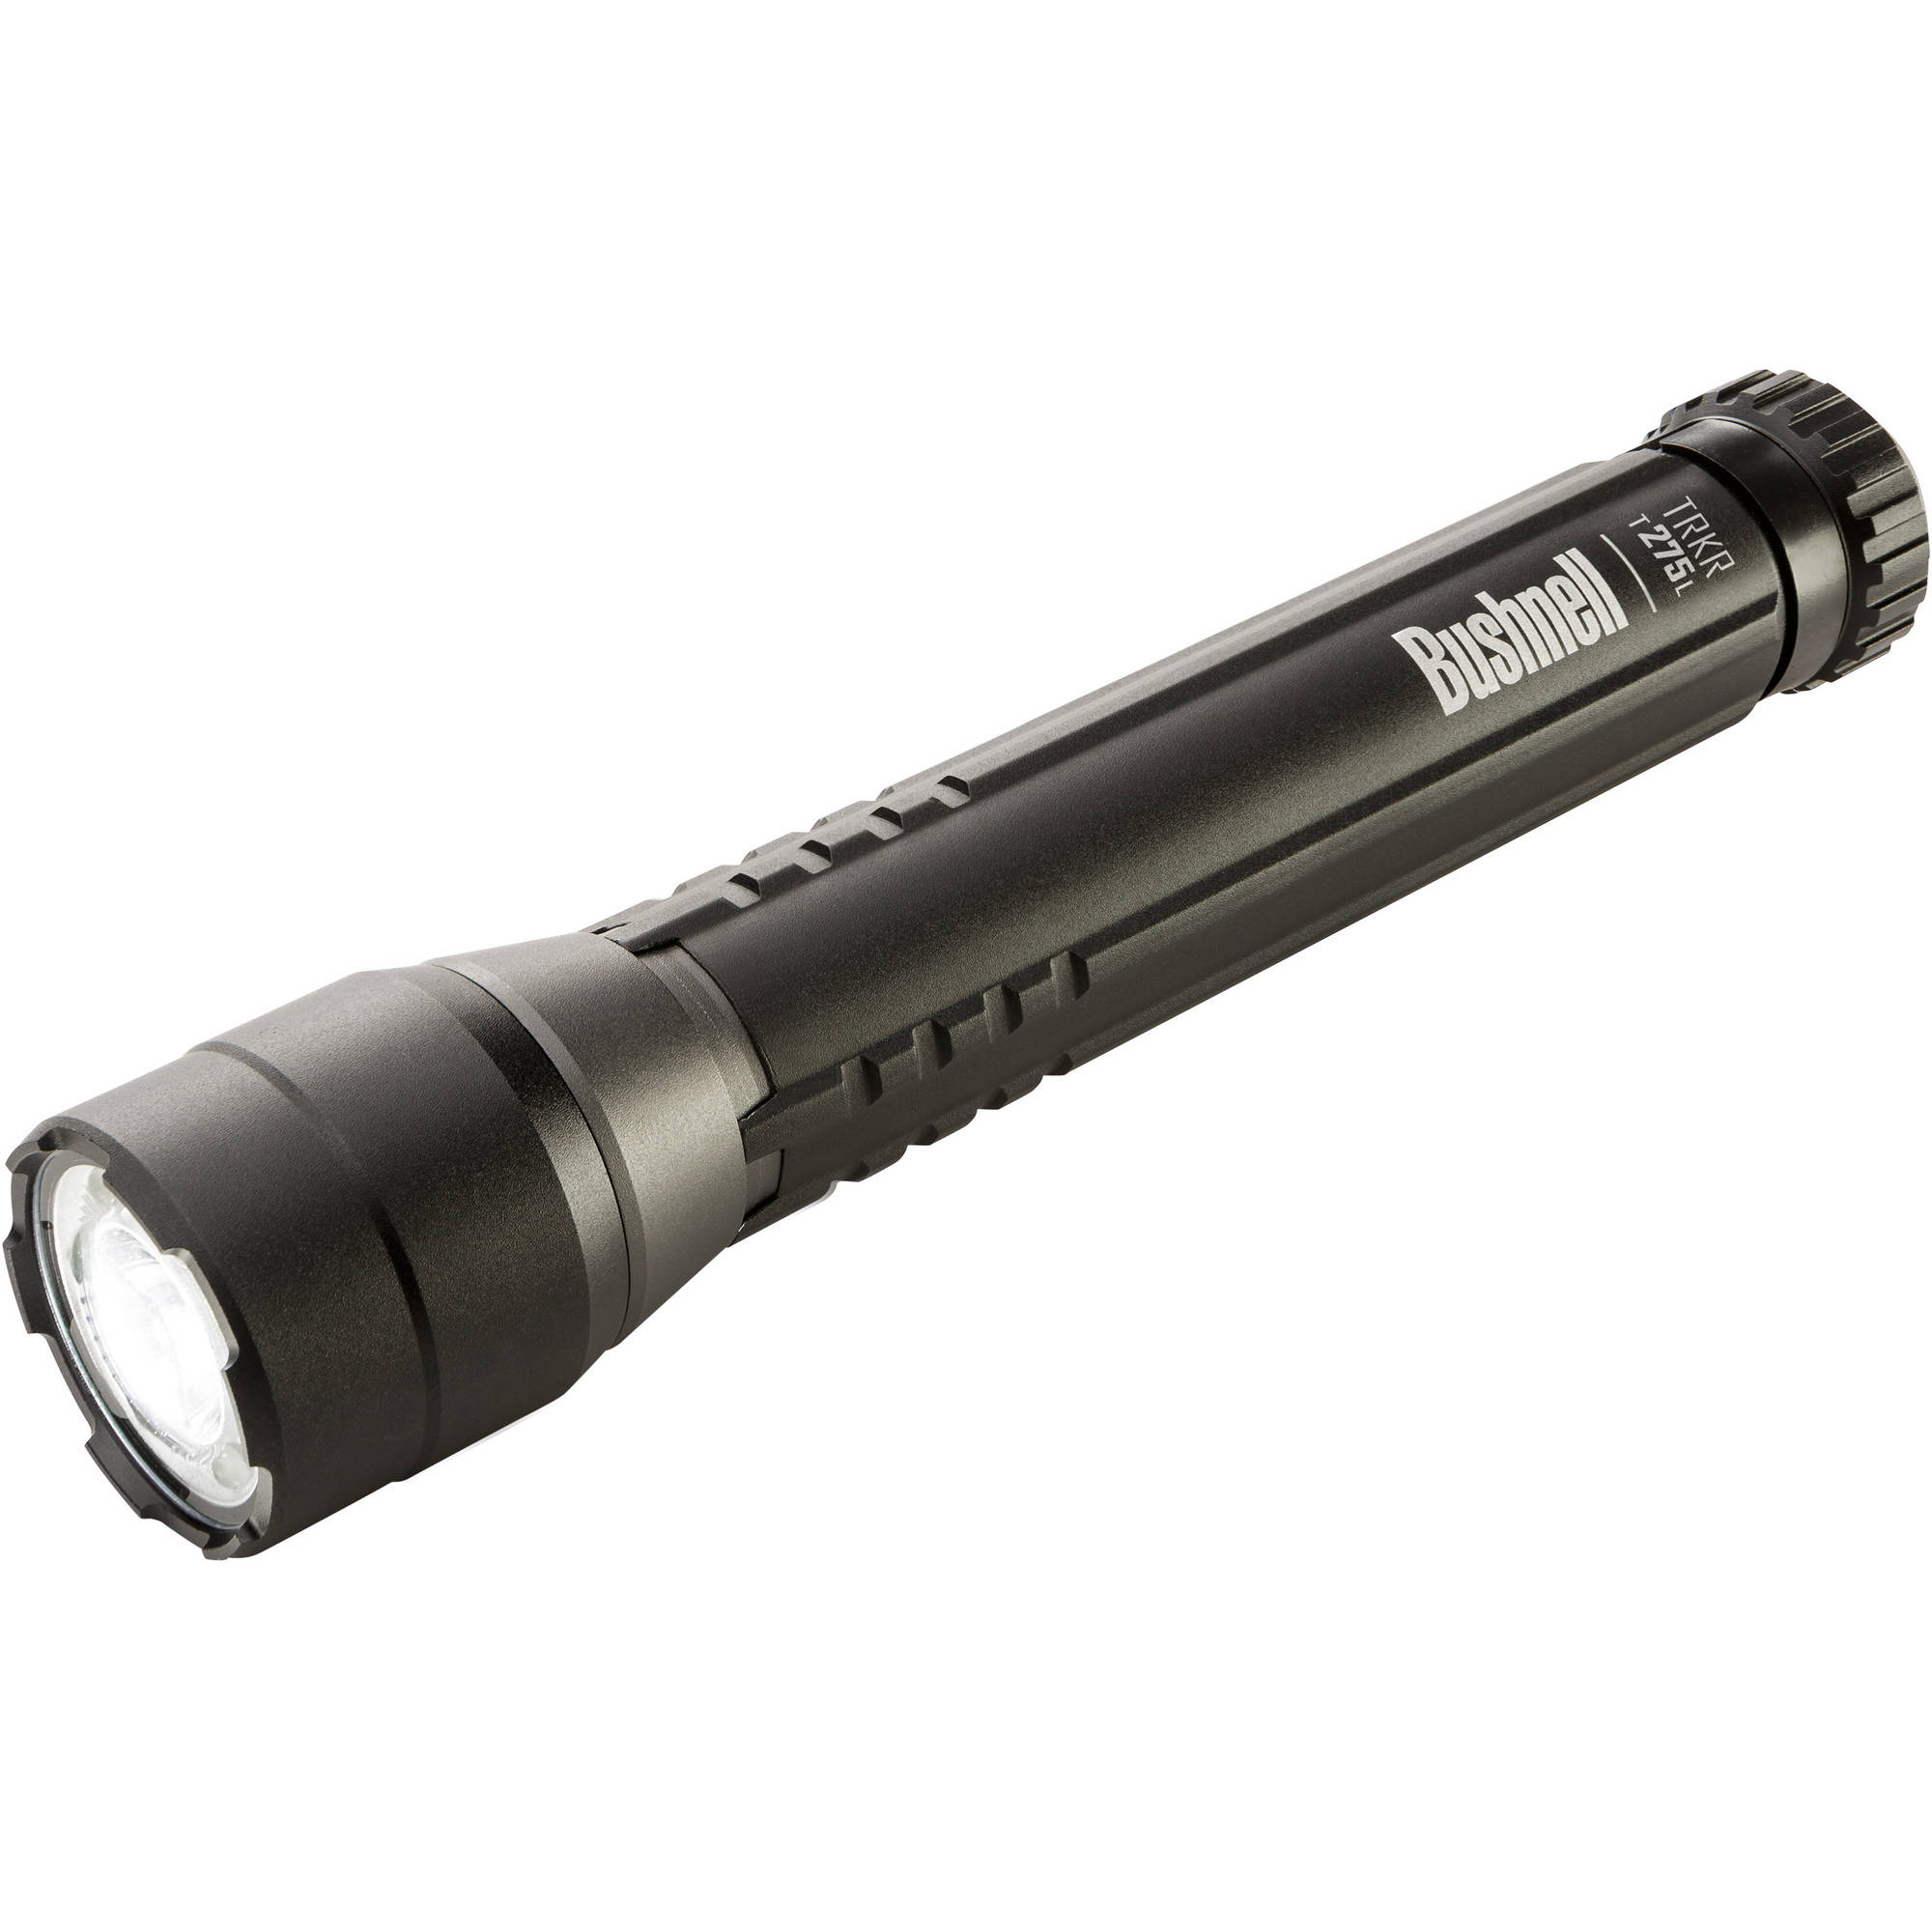 Flash Light Bushnell Trkr T1250l Multi Color Lights Led Aluminum Flashlight